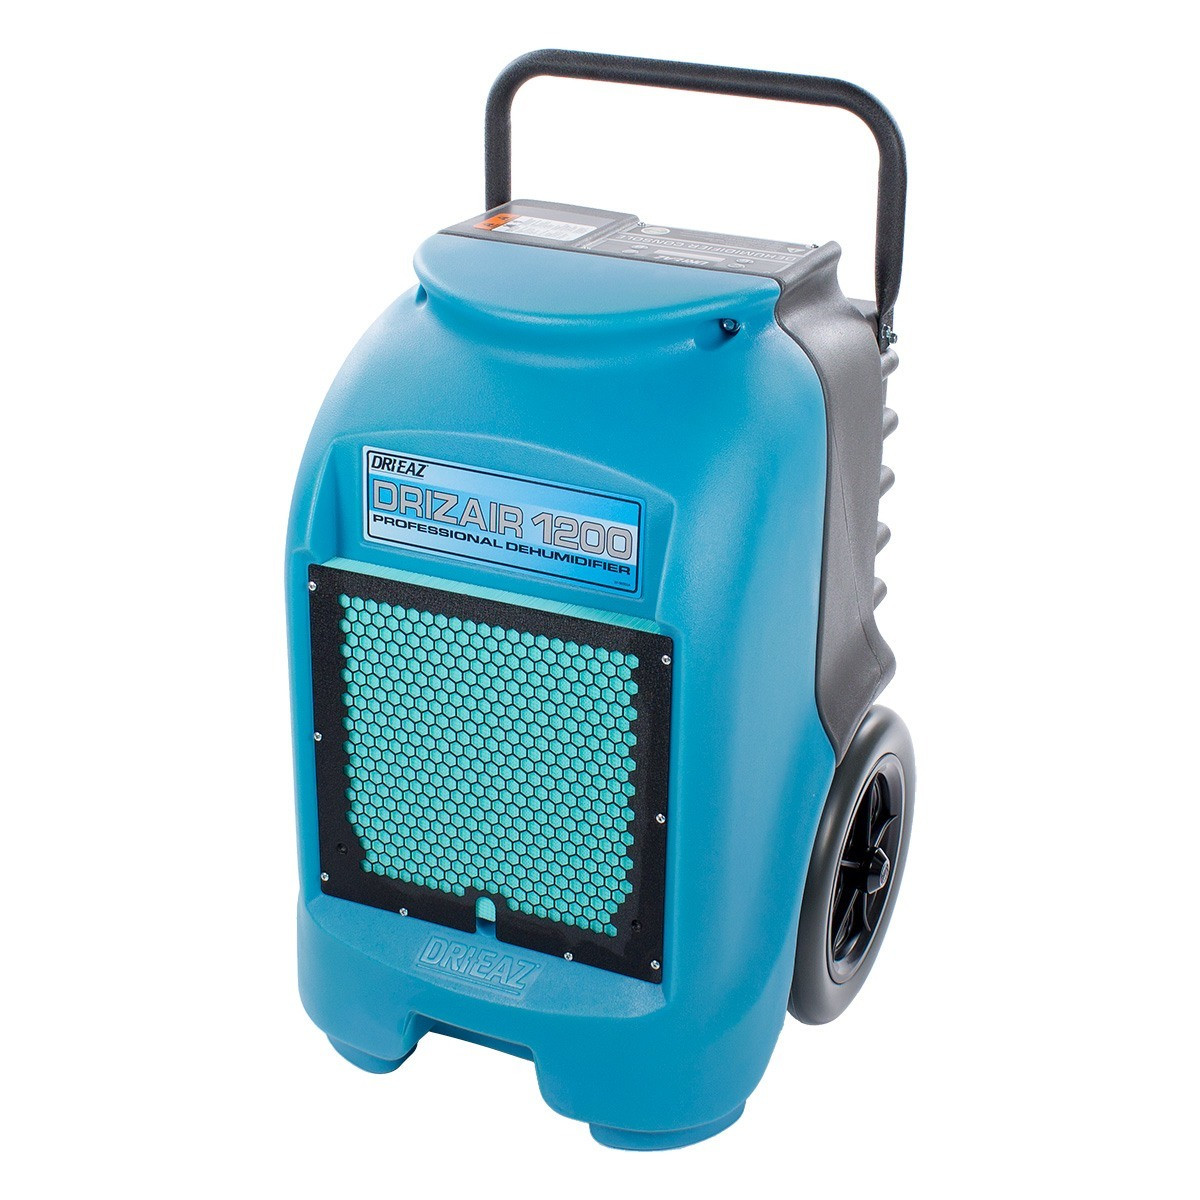 Dri Eaz 174 Drizair 174 1200 Portable Dehumidifier Model F203